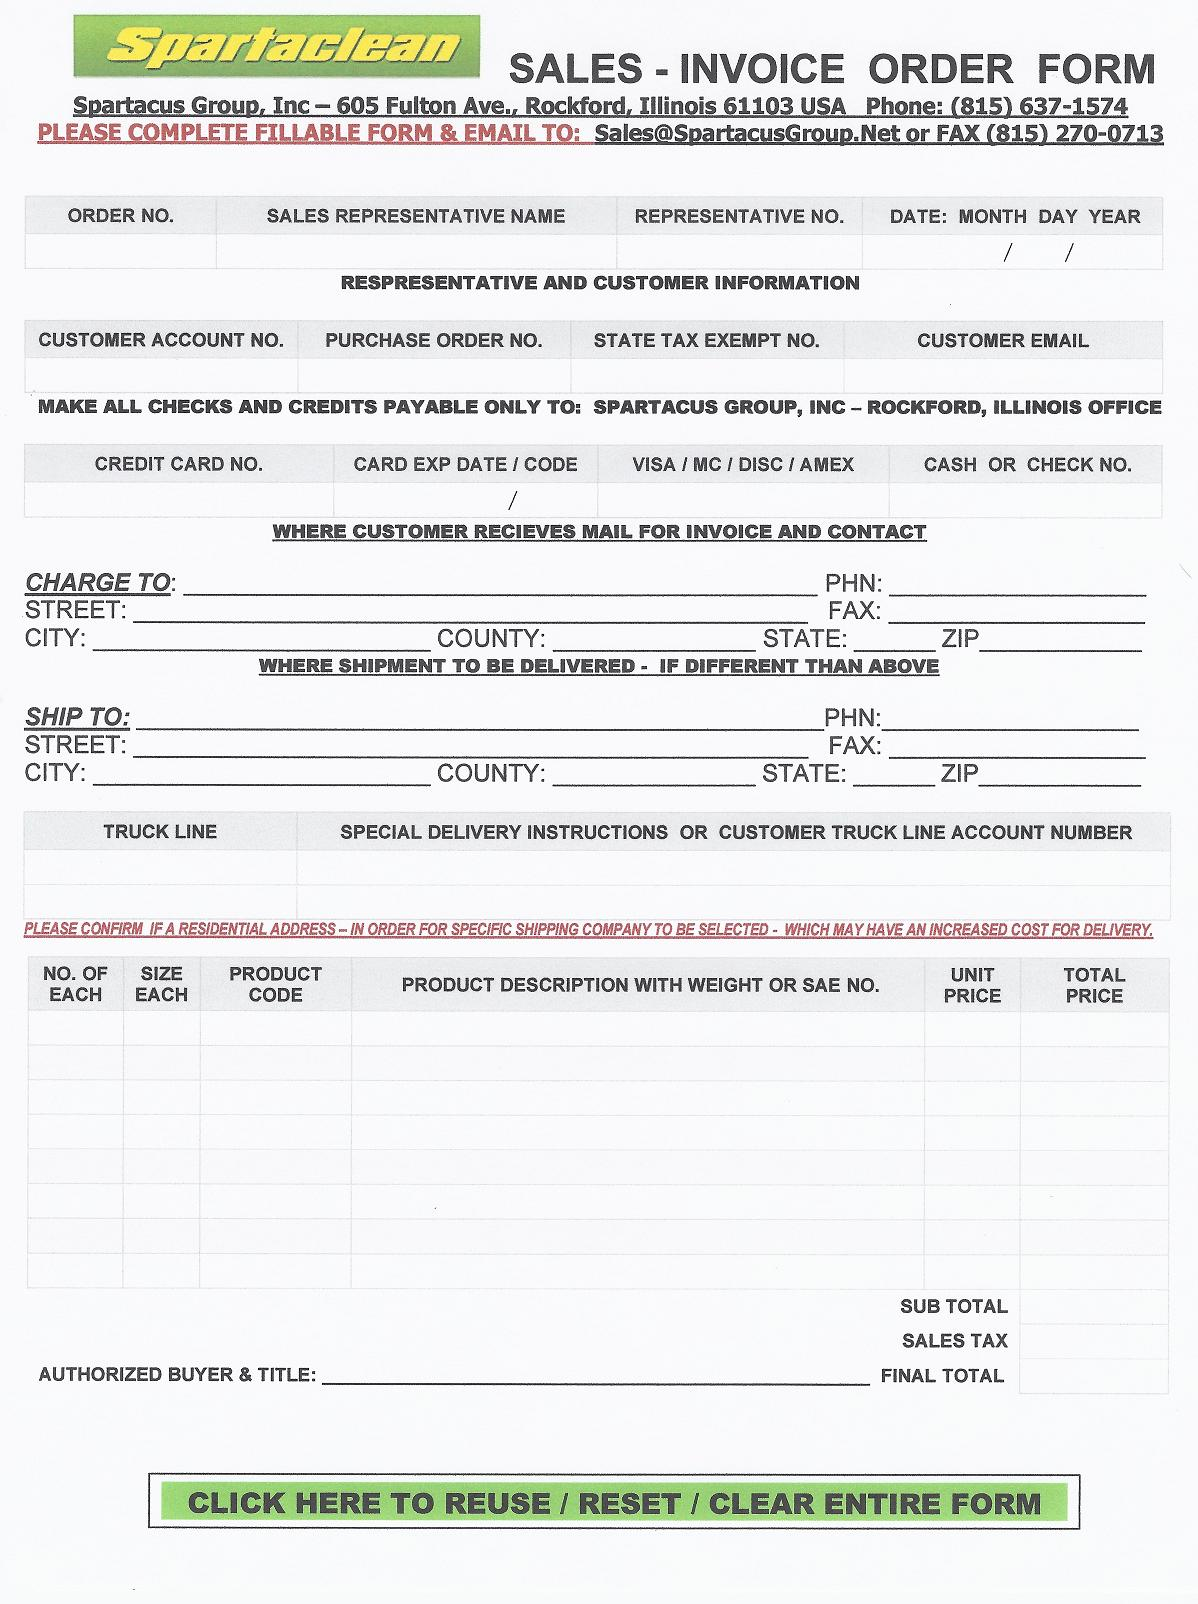 spartamax products spartacus sales order form